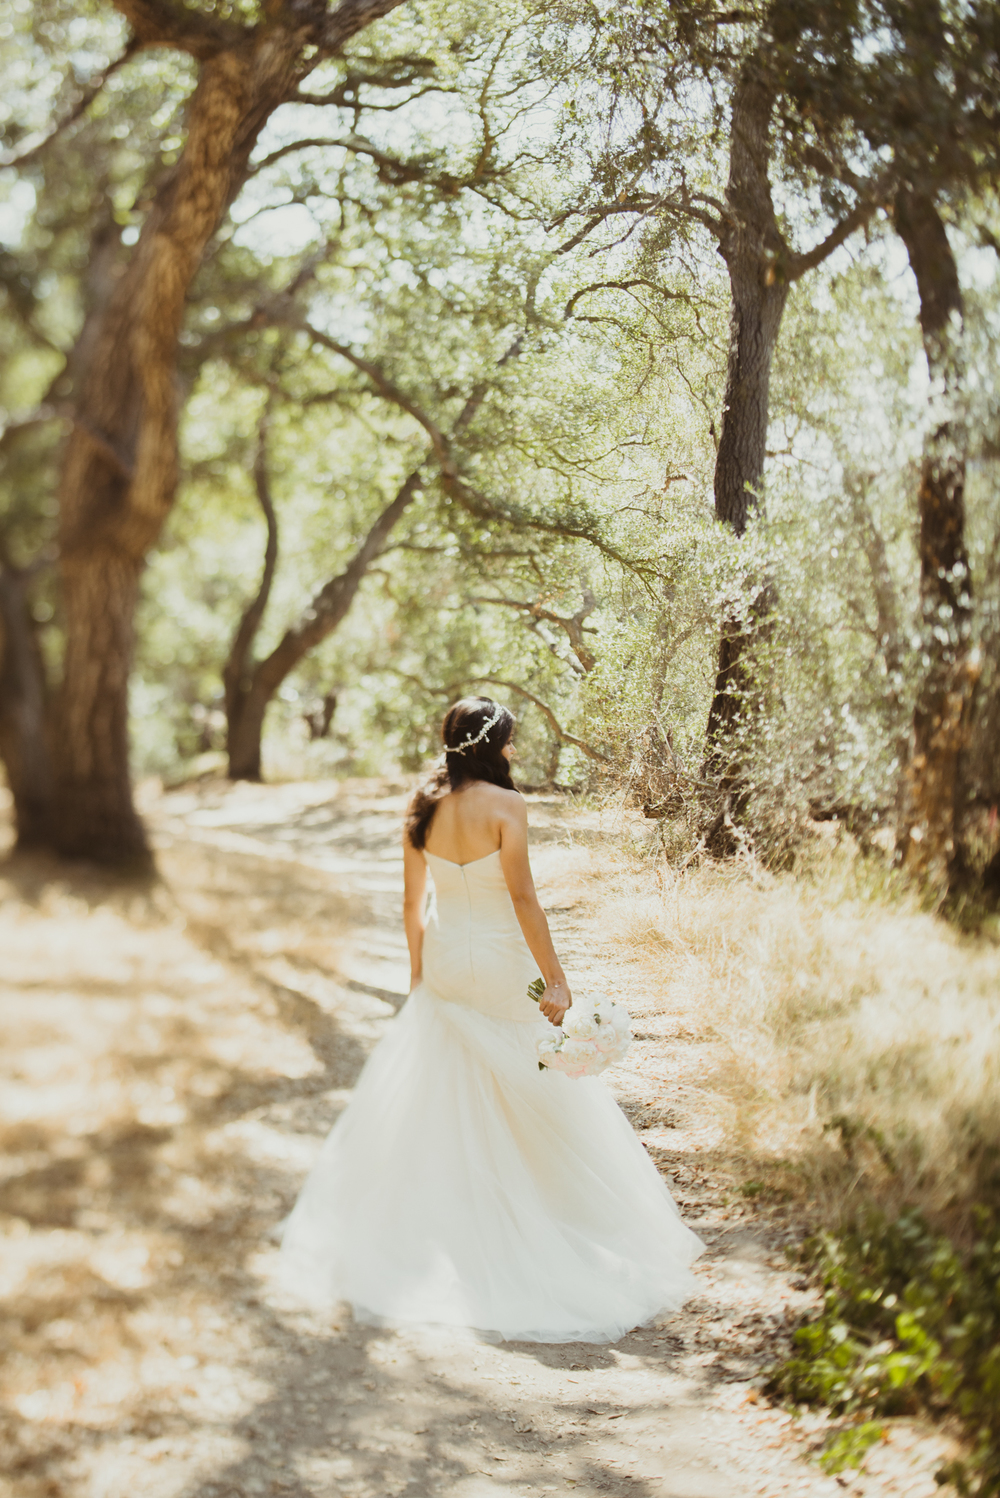 ©Isaiah & Taylor Photography - Inn of the Seventh Ray Wedding, Topanga Canyon California-28.jpg